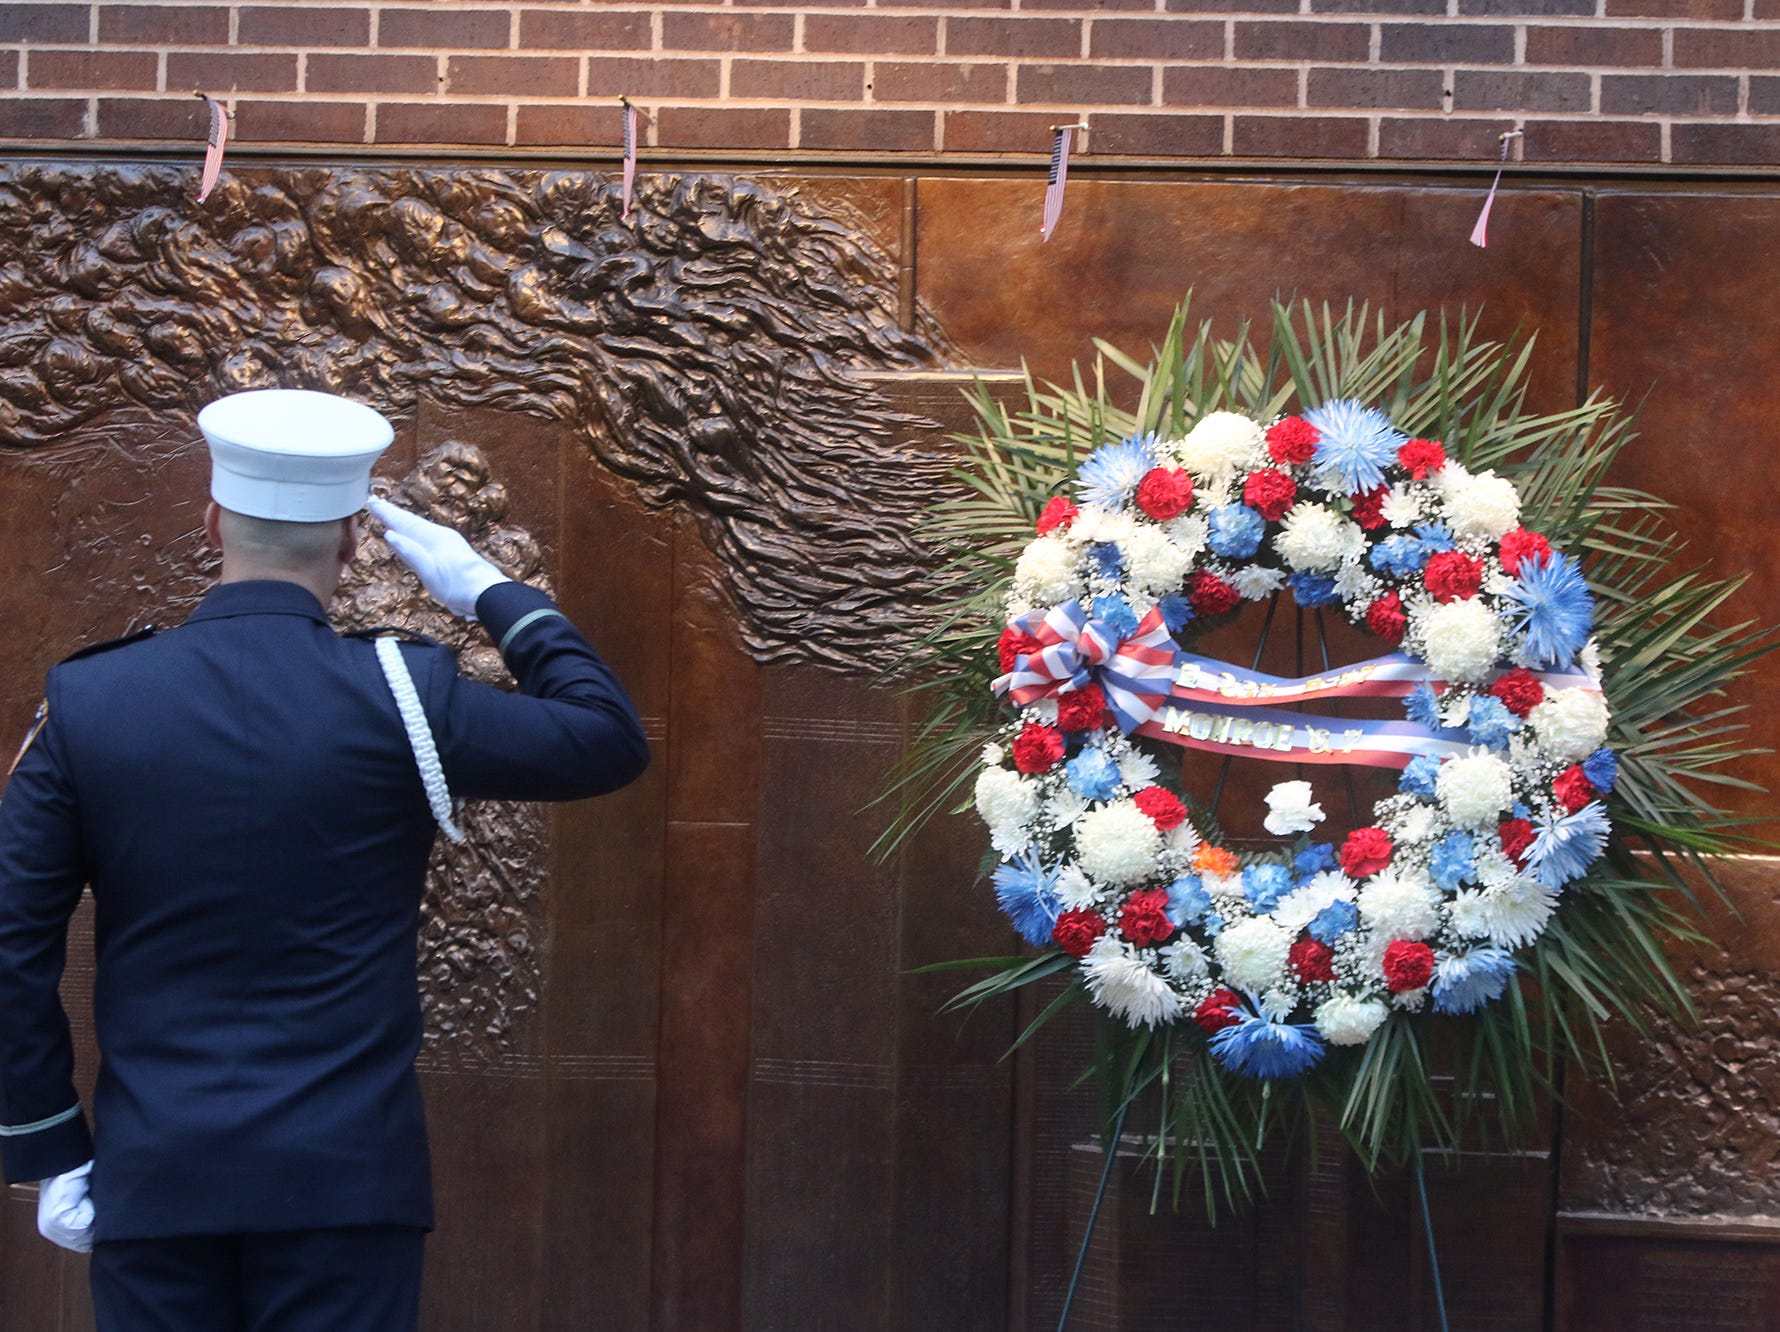 A member of the honor guard salutes the wreath hung at the memorial outside the building that houses Fire Co. 10, who lost members in the attacks of September 11, 2001 in lower Manhattan. This is prior to ceremonies at the National September 11 Memorial observing the 17th anniversary of the attacks that killed people in Manhattan, the Pentagon, Flight 93 and honoring those who died in the 1993 World Trade Center bombing.